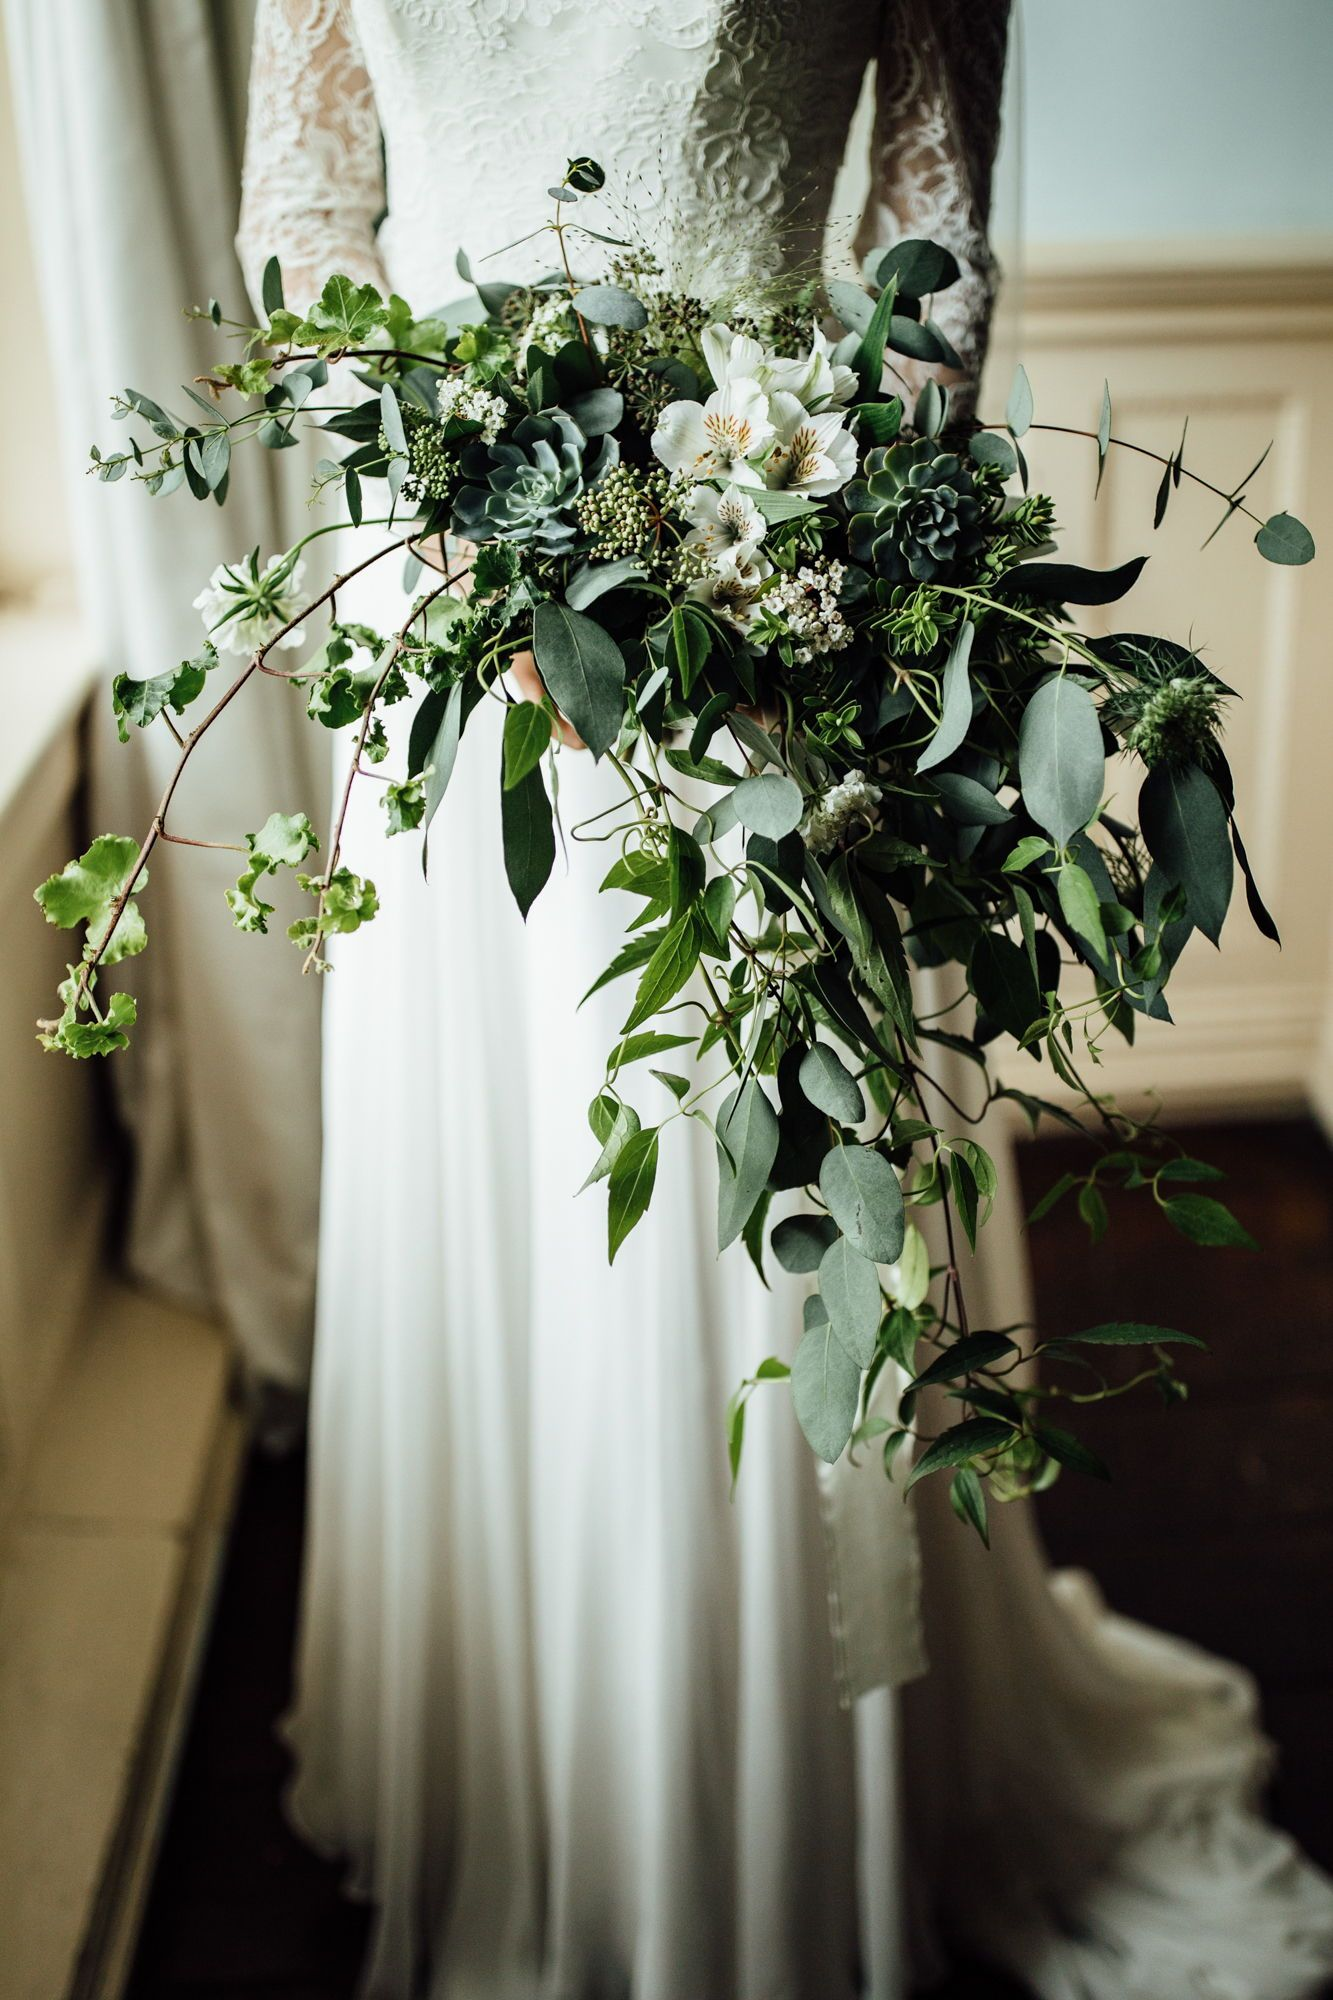 Cascading bouquet with foliage and white flowers. Winter wedding, classic green & white wedding inspiration. See the full supplier list on the blog, link below.